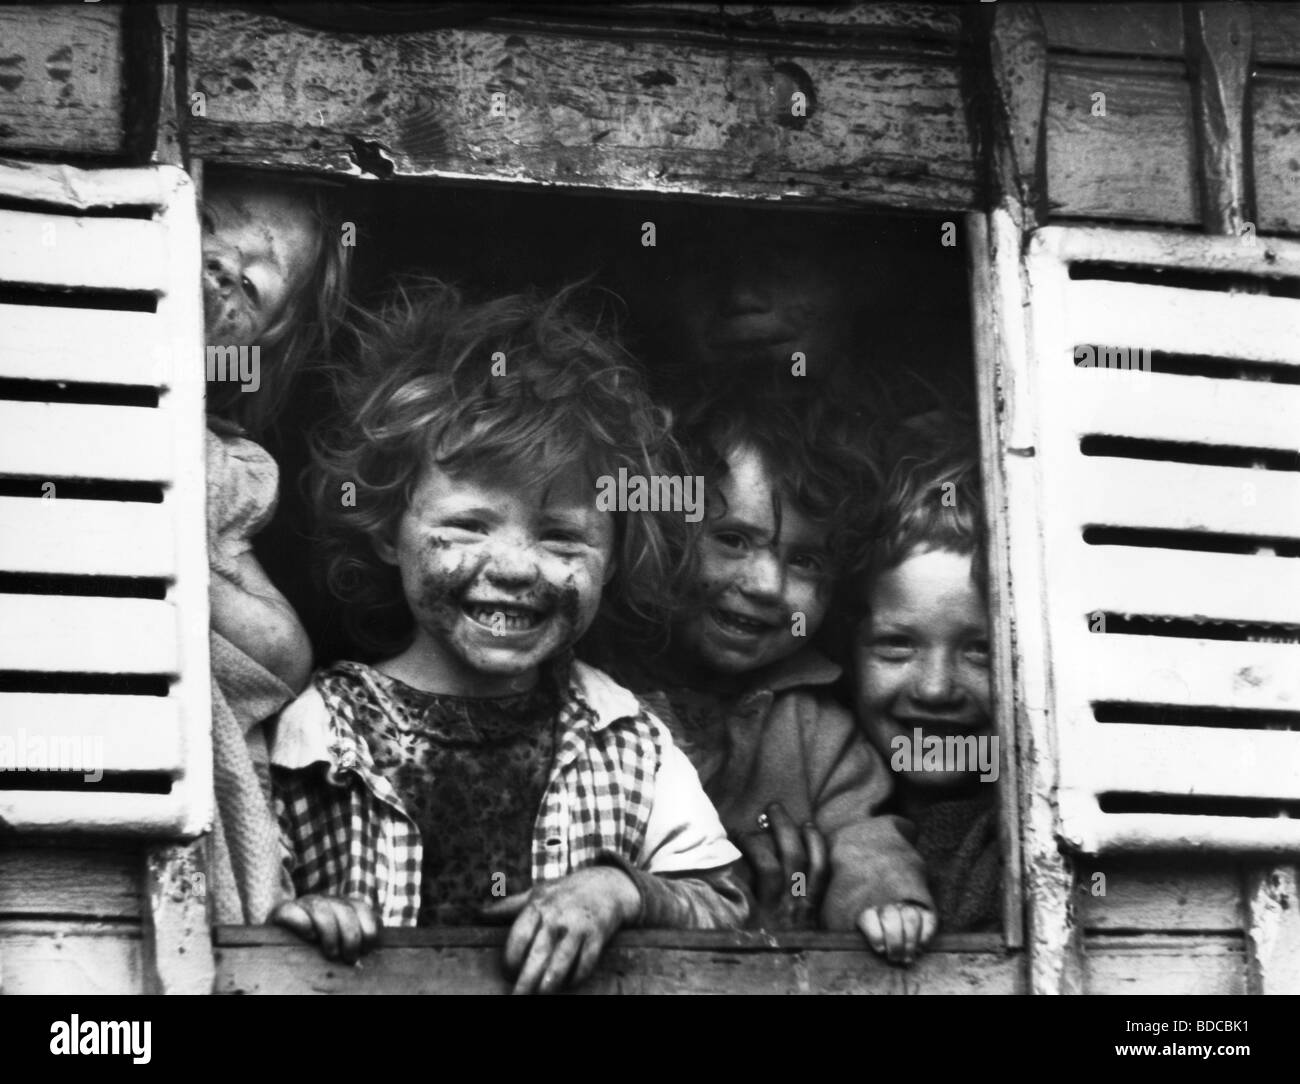 people, children, infants, little Roma children at a window, laughing, Ireland, 1968, Additional-Rights-Clearances - Stock Image